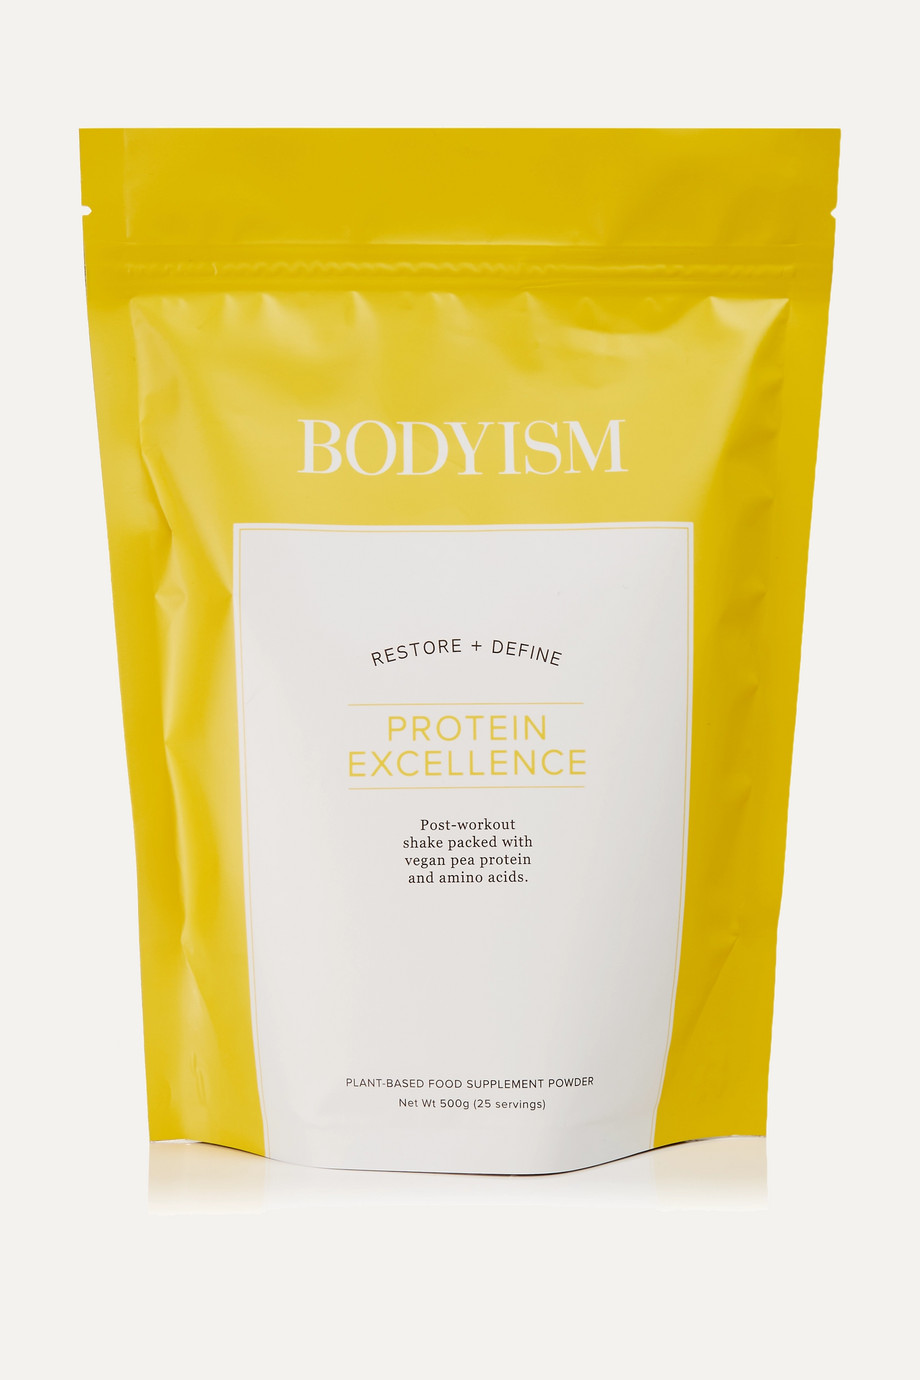 Bodyism Protein Excellence shake, 500g